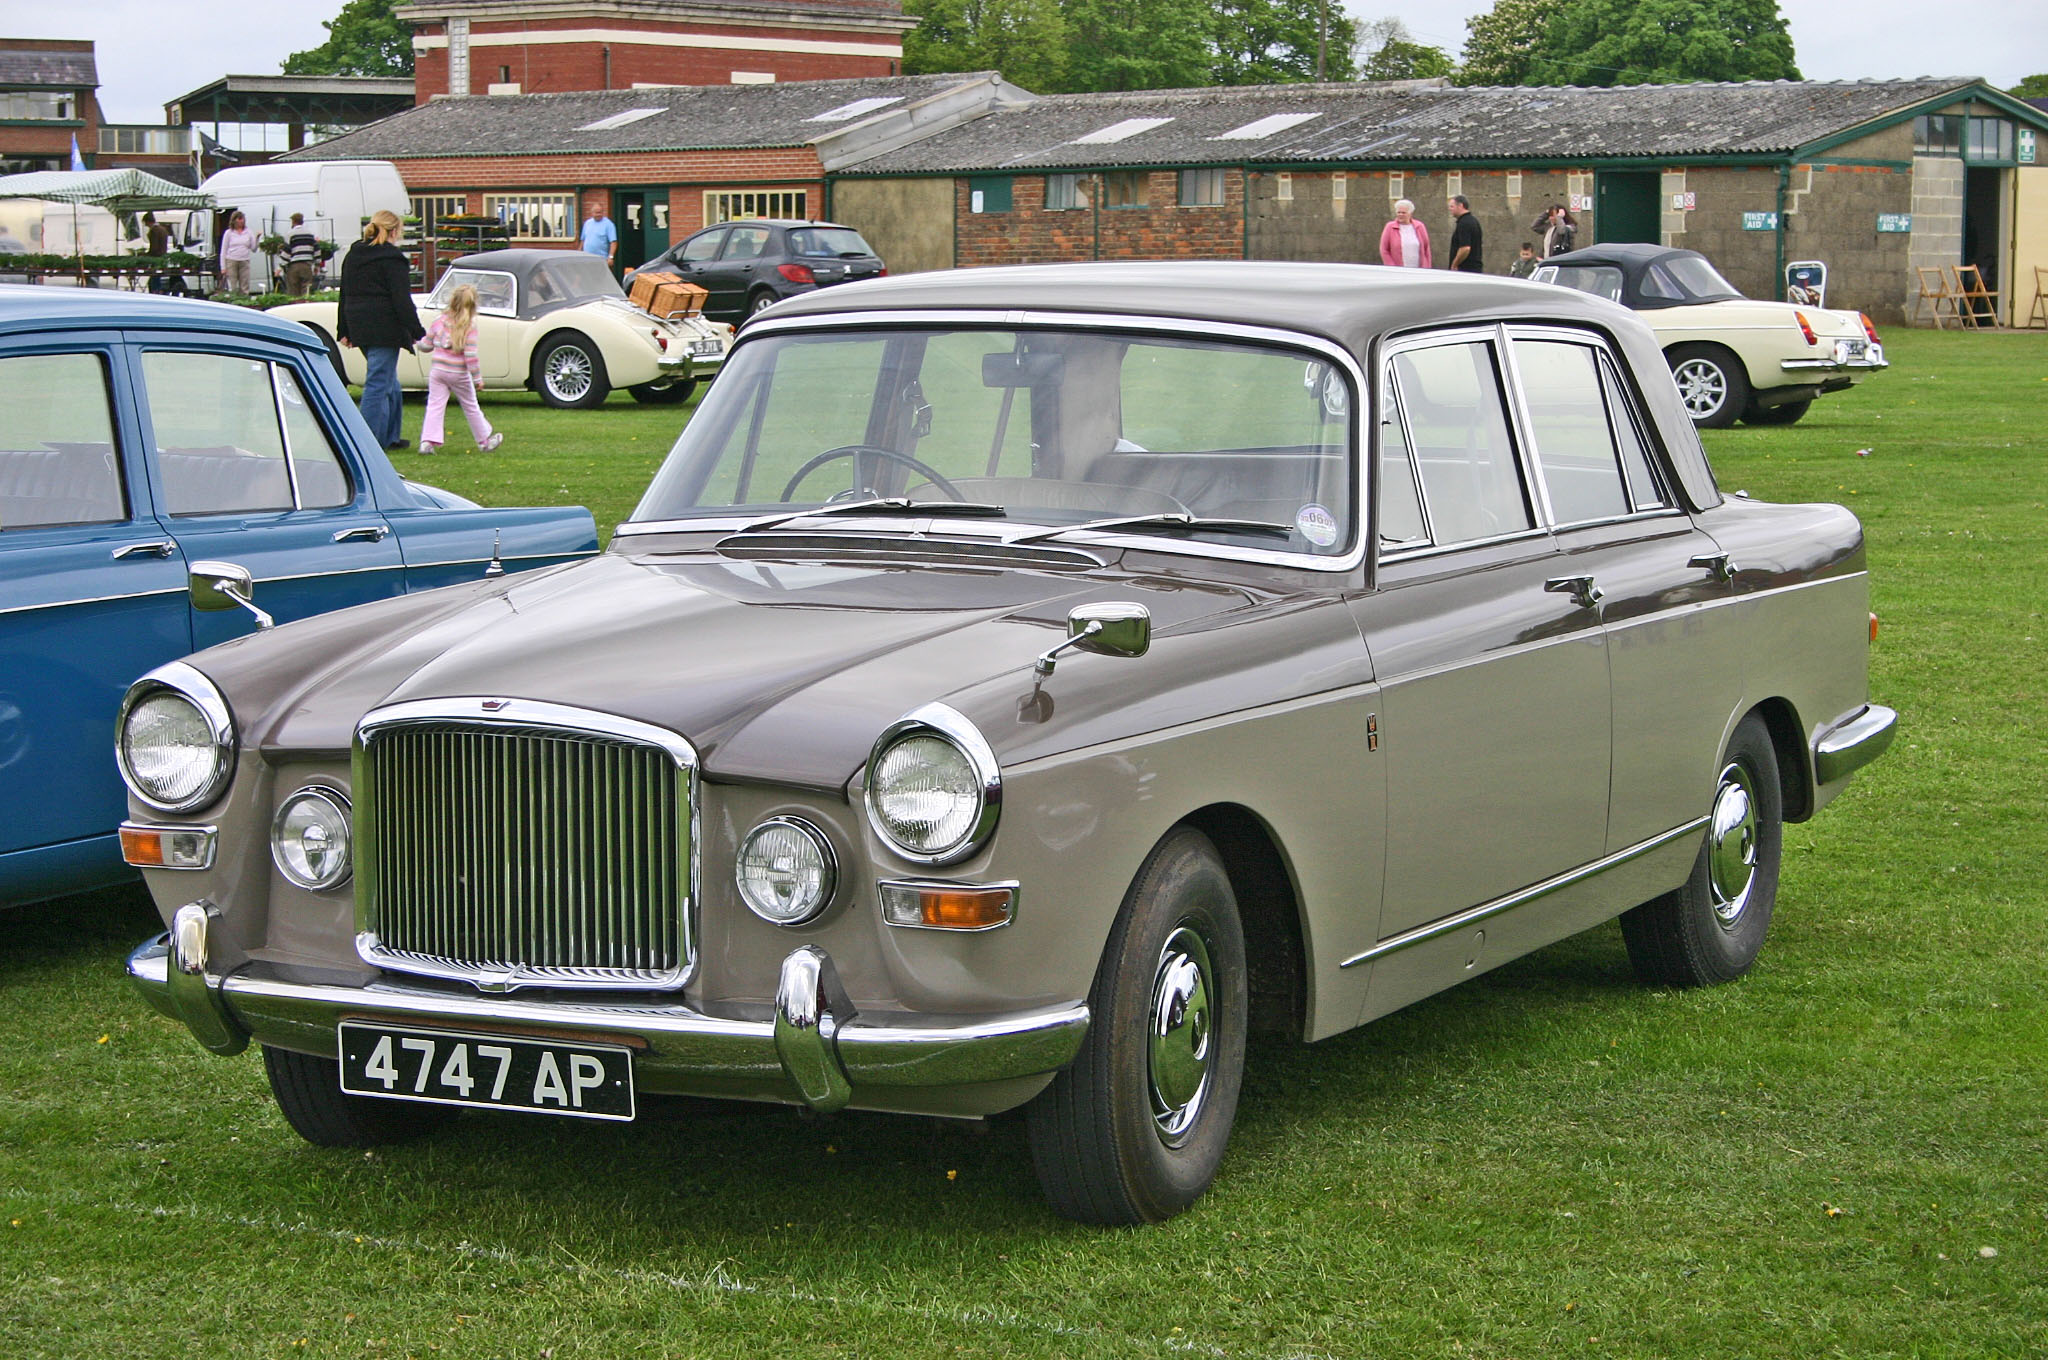 File:Vanden-Plas Princess 4-litre R front.jpg - Wikipedia, the ...